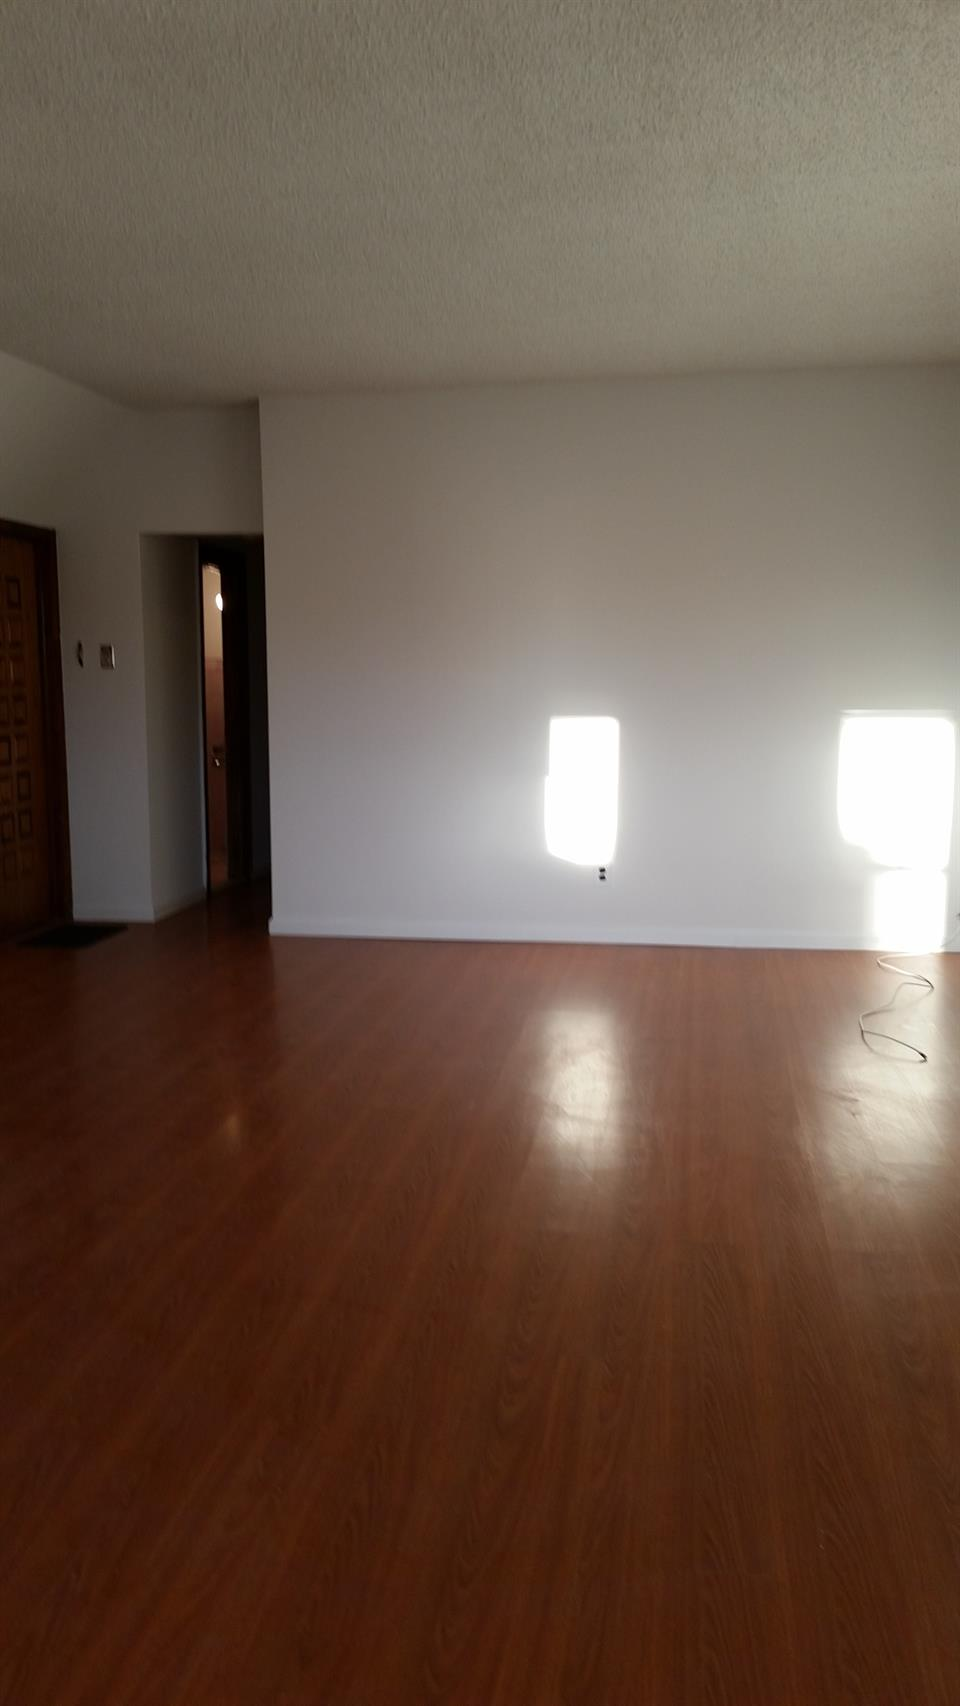 Residential for Rent at 1735 74th St. Other Areas, USA